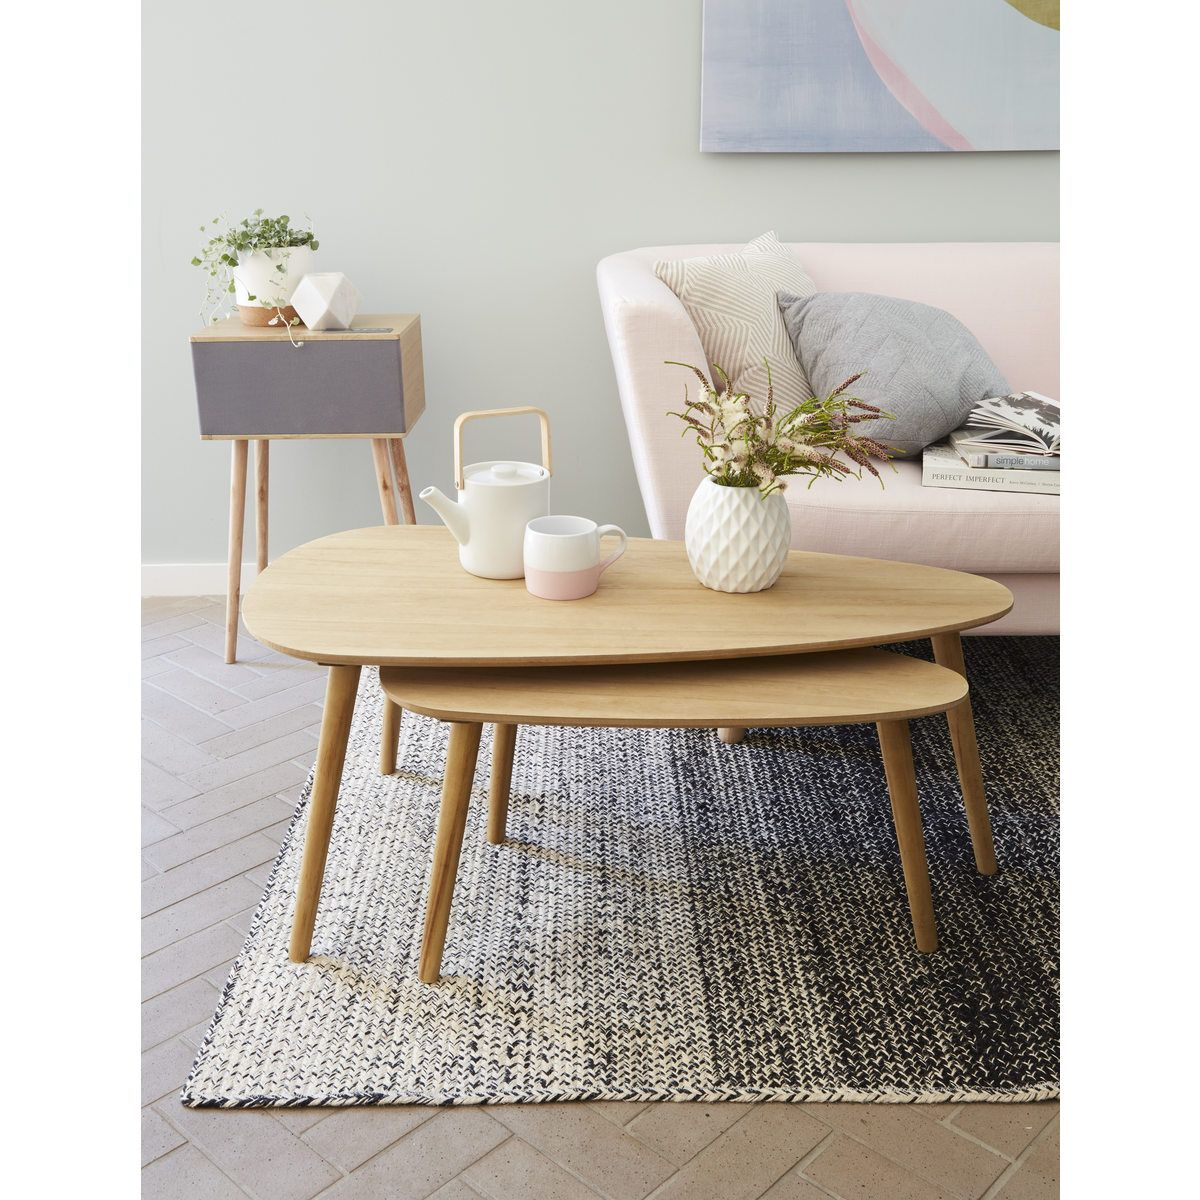 Coffee Tables - Natural Look, Set of 2 | Kmart | (Home) Where the ...